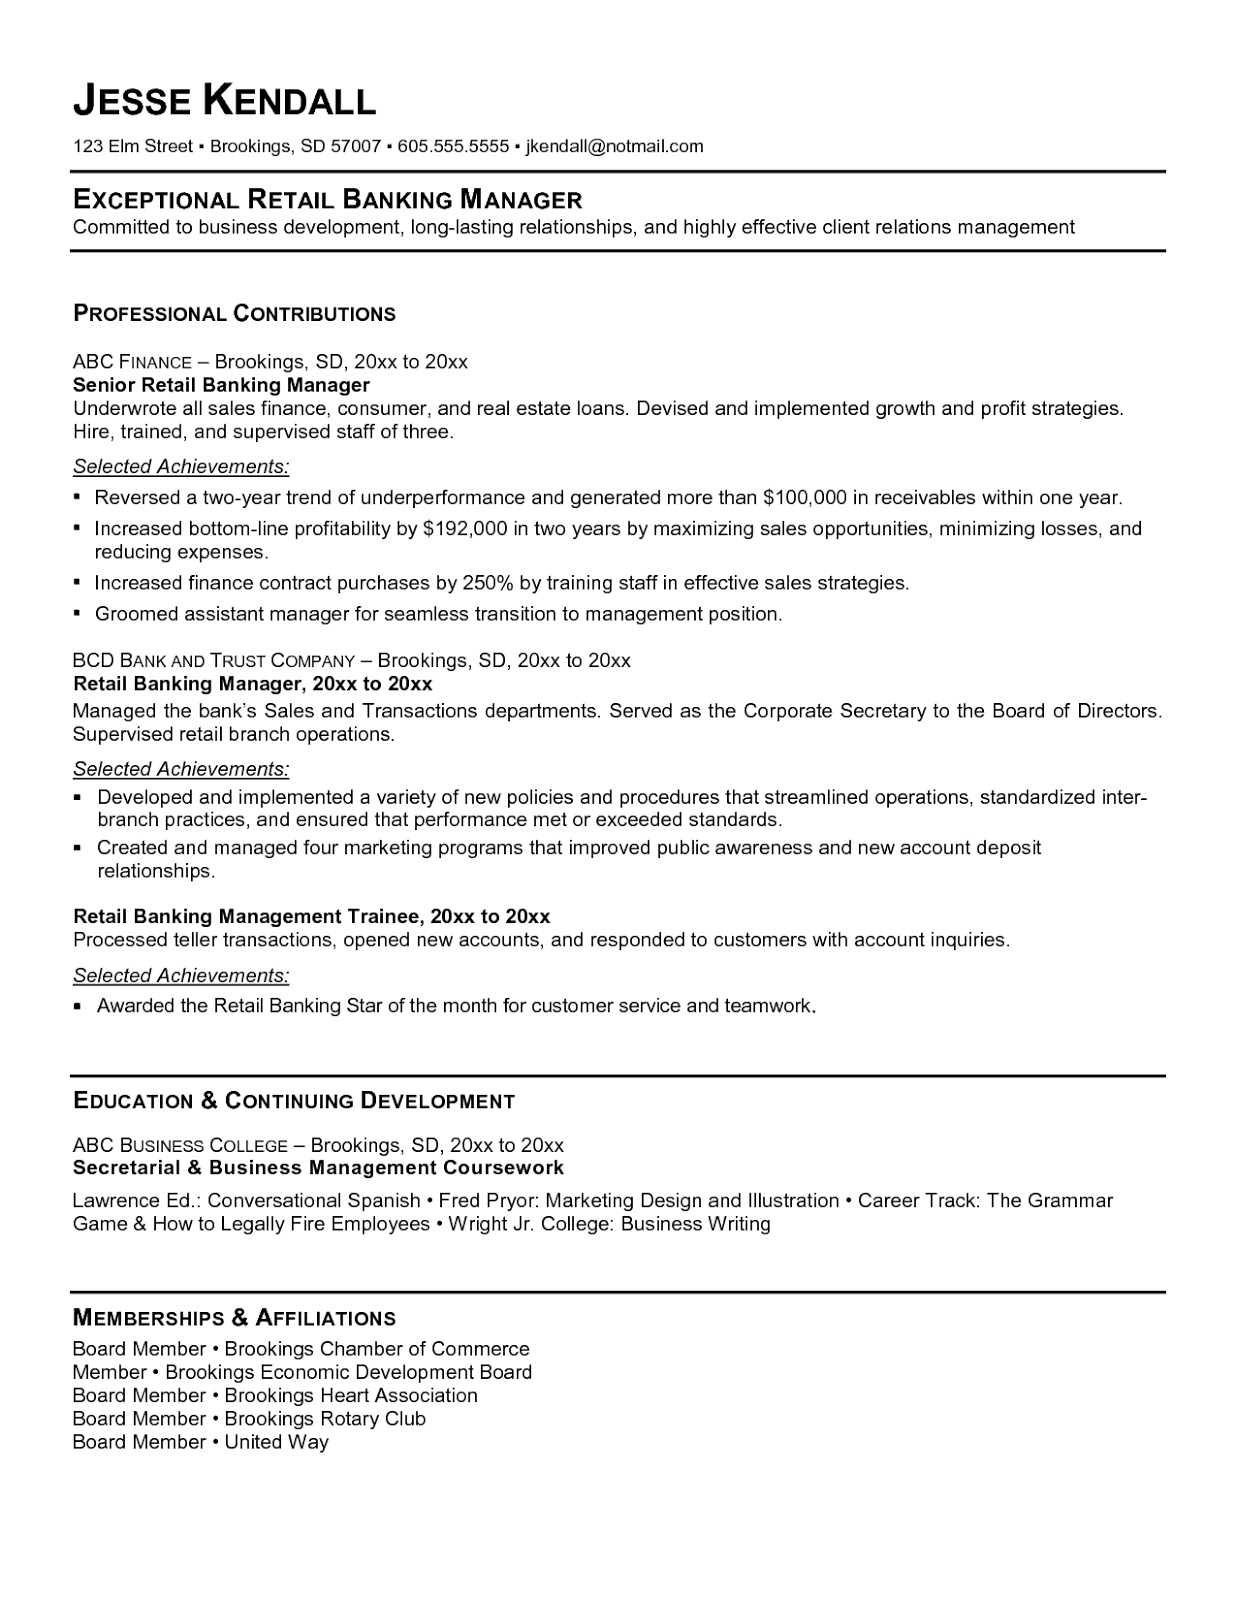 Unique Resume Titles 2019 Unique Resume Names Examples 2020 Resume Templates